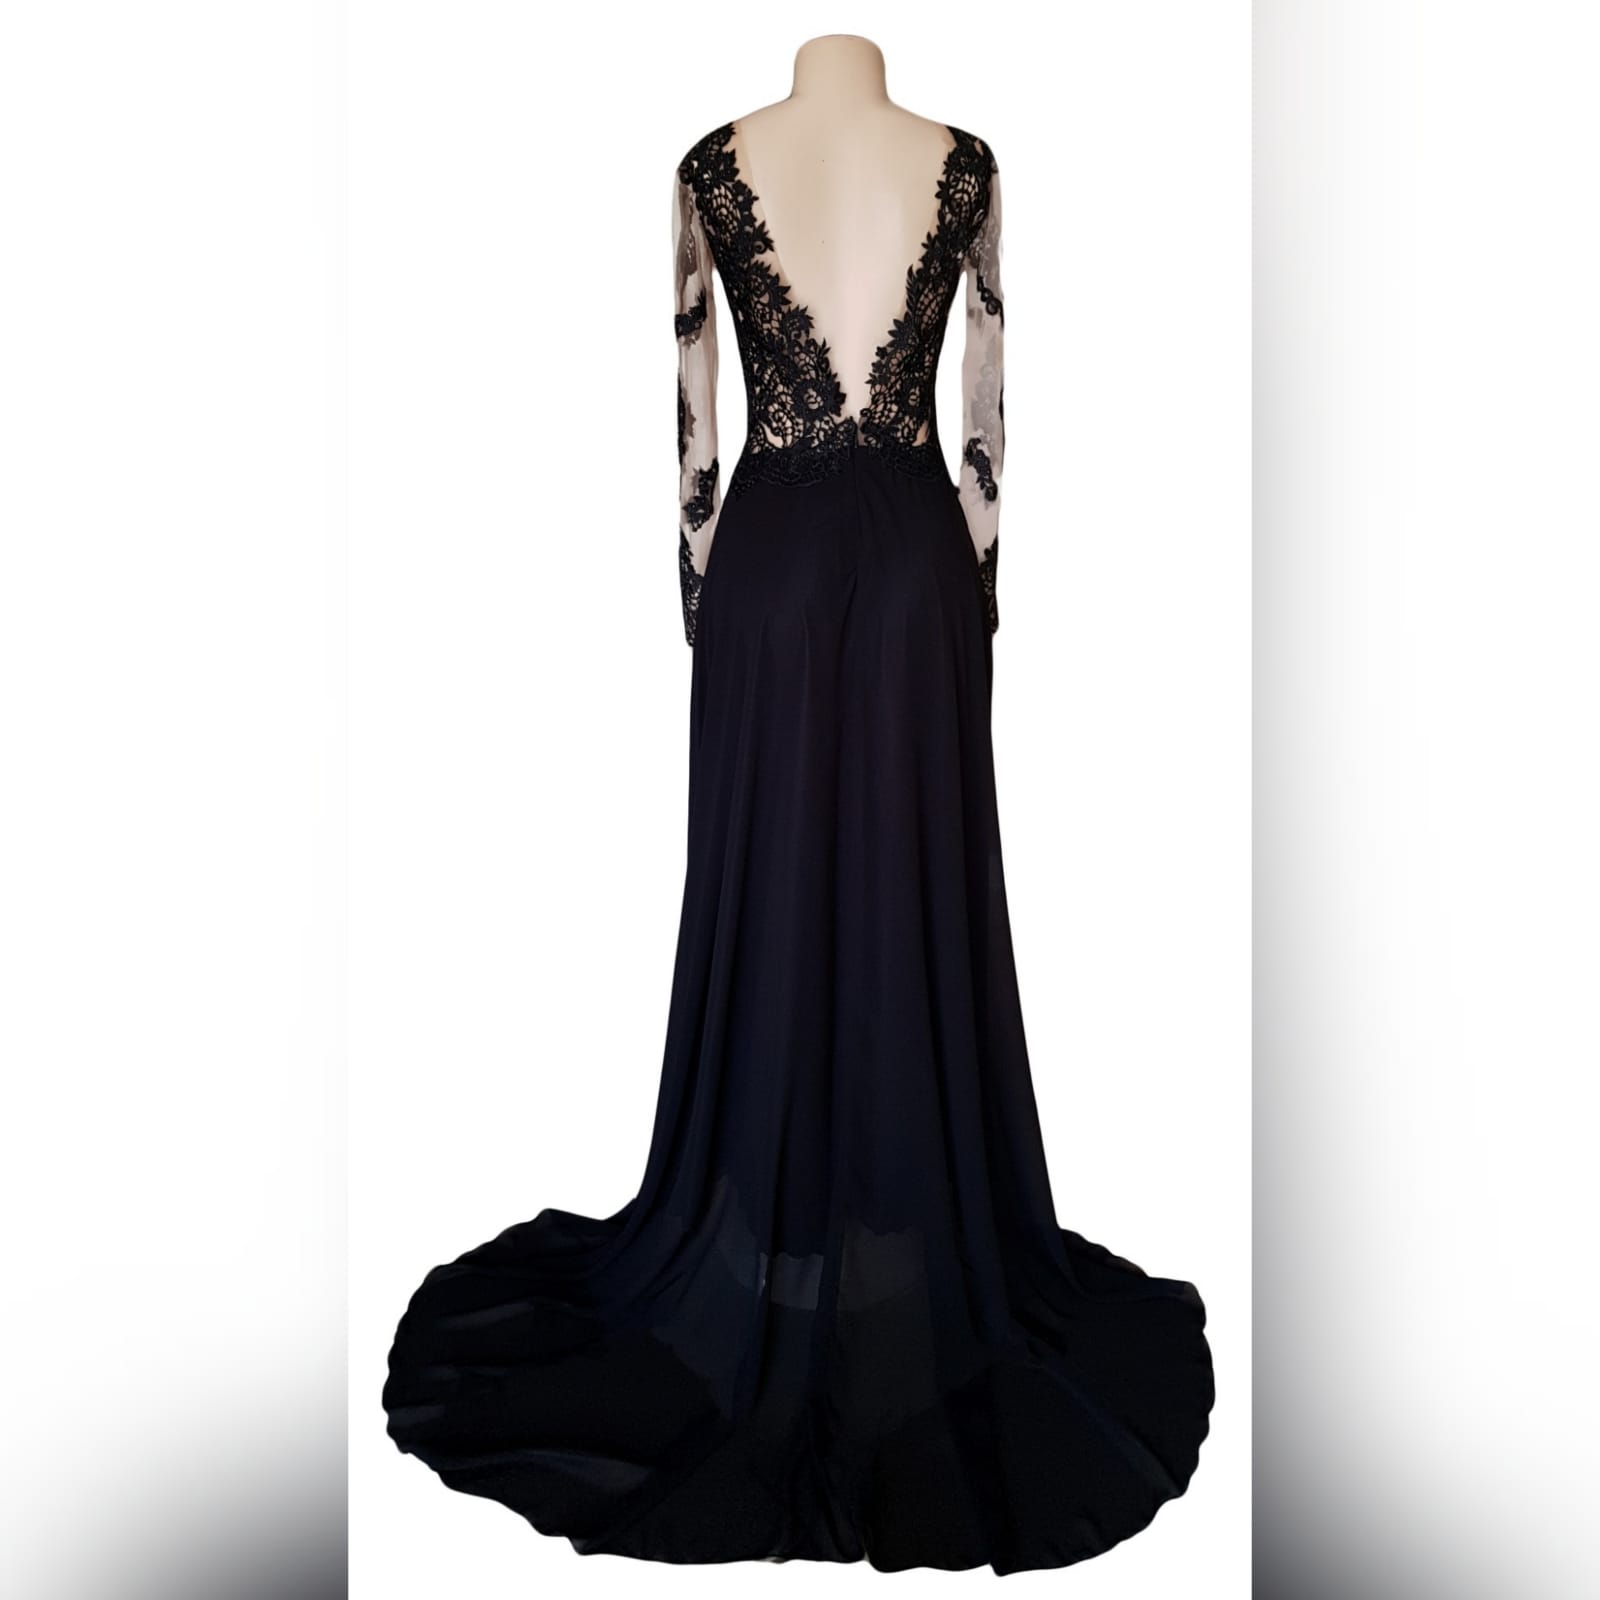 Black lace long flowy prom dress 3 black lace long flowy prom dress with an illusion plunging neckline, long illusion lace sleeves, v open back with a train and a slit.